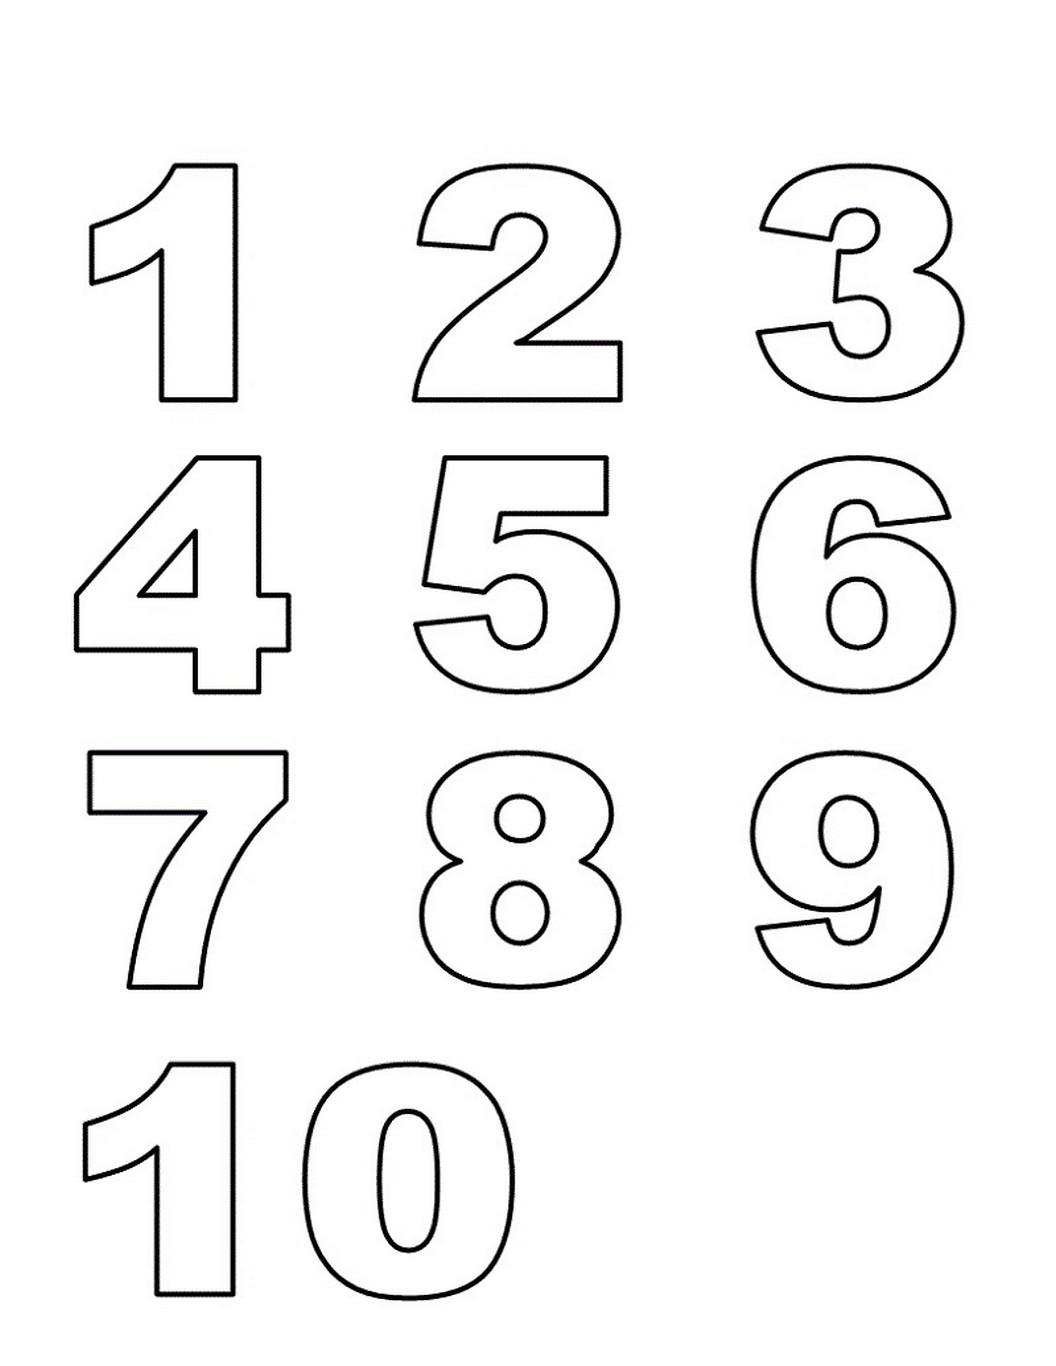 Free Numbers 1-10 to Print | Learning Printable